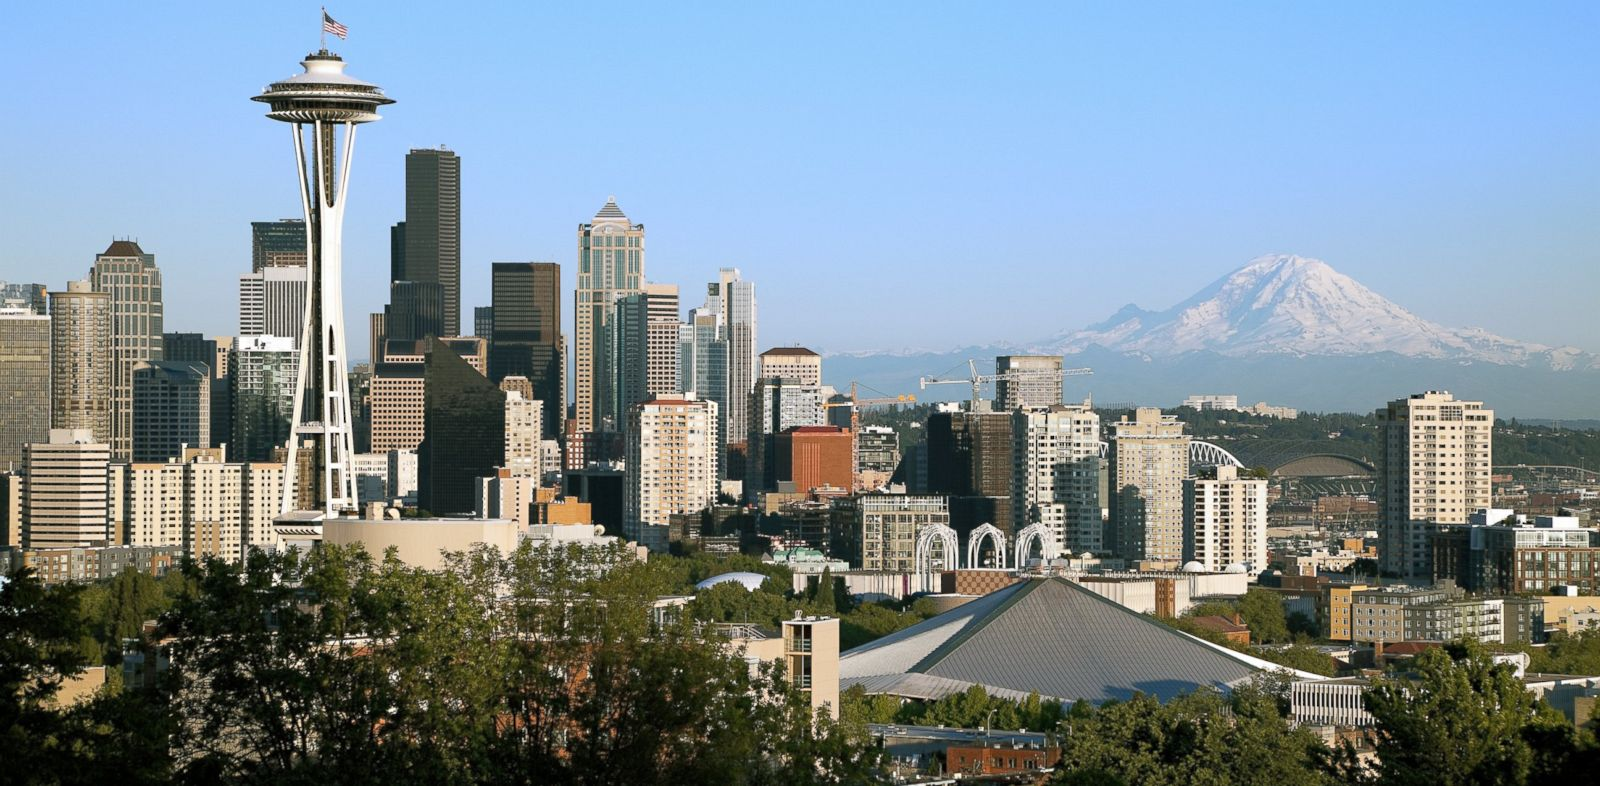 PHOTO: Its tough to beat the 360-degree views from the famous 52-story Space Needle. But the shore is a great alternative.